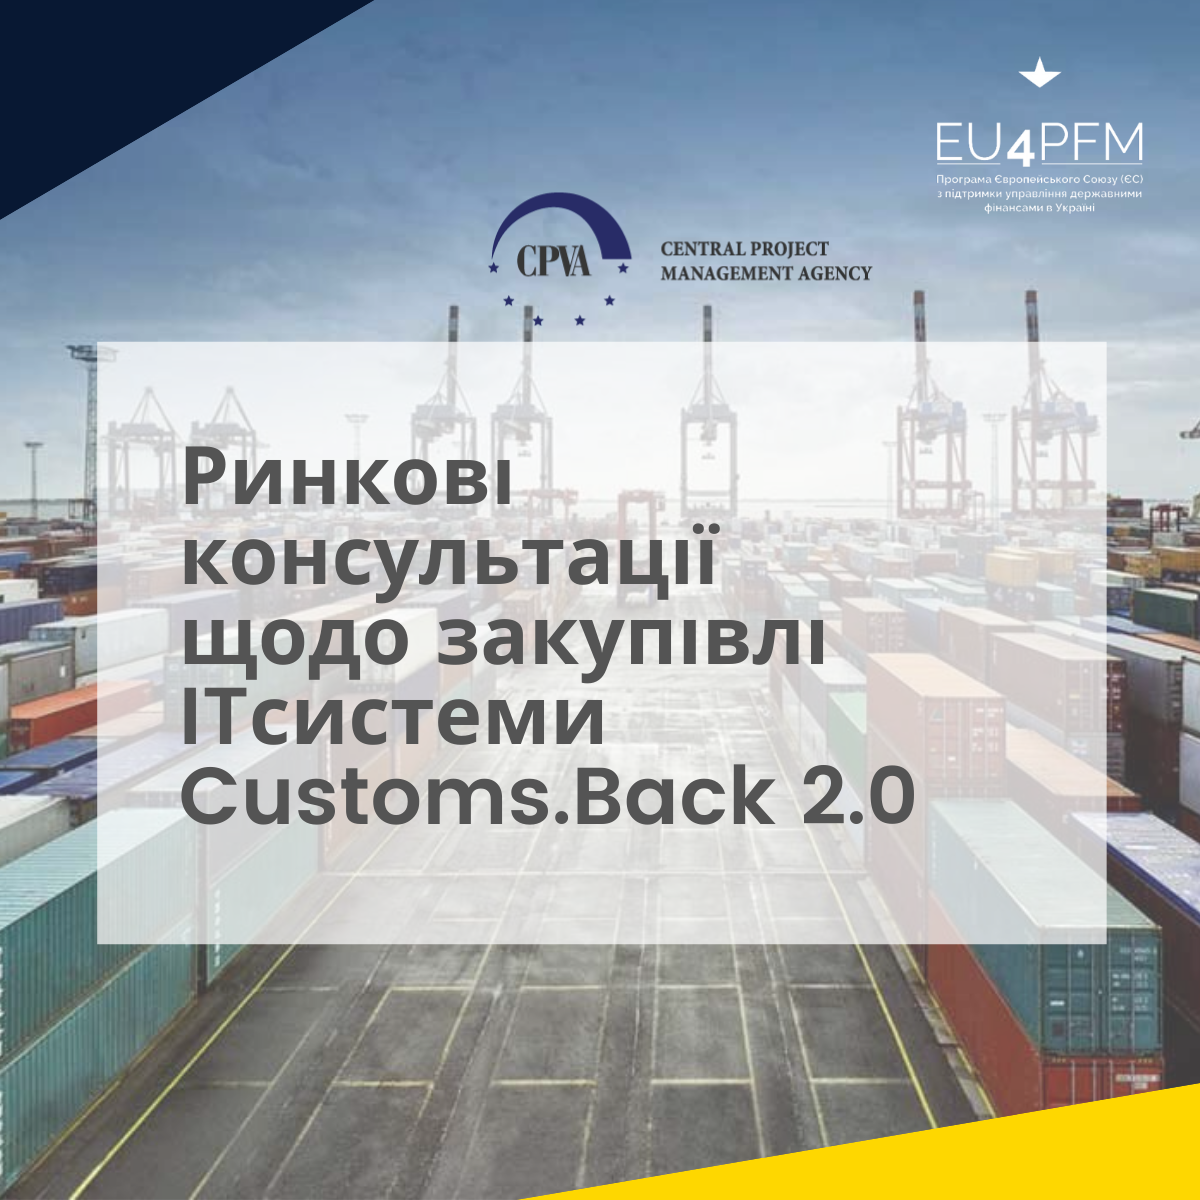 """Call to participate in the market consultation for the procurement of """"IT system Customs.Back 2.0 development services"""""""